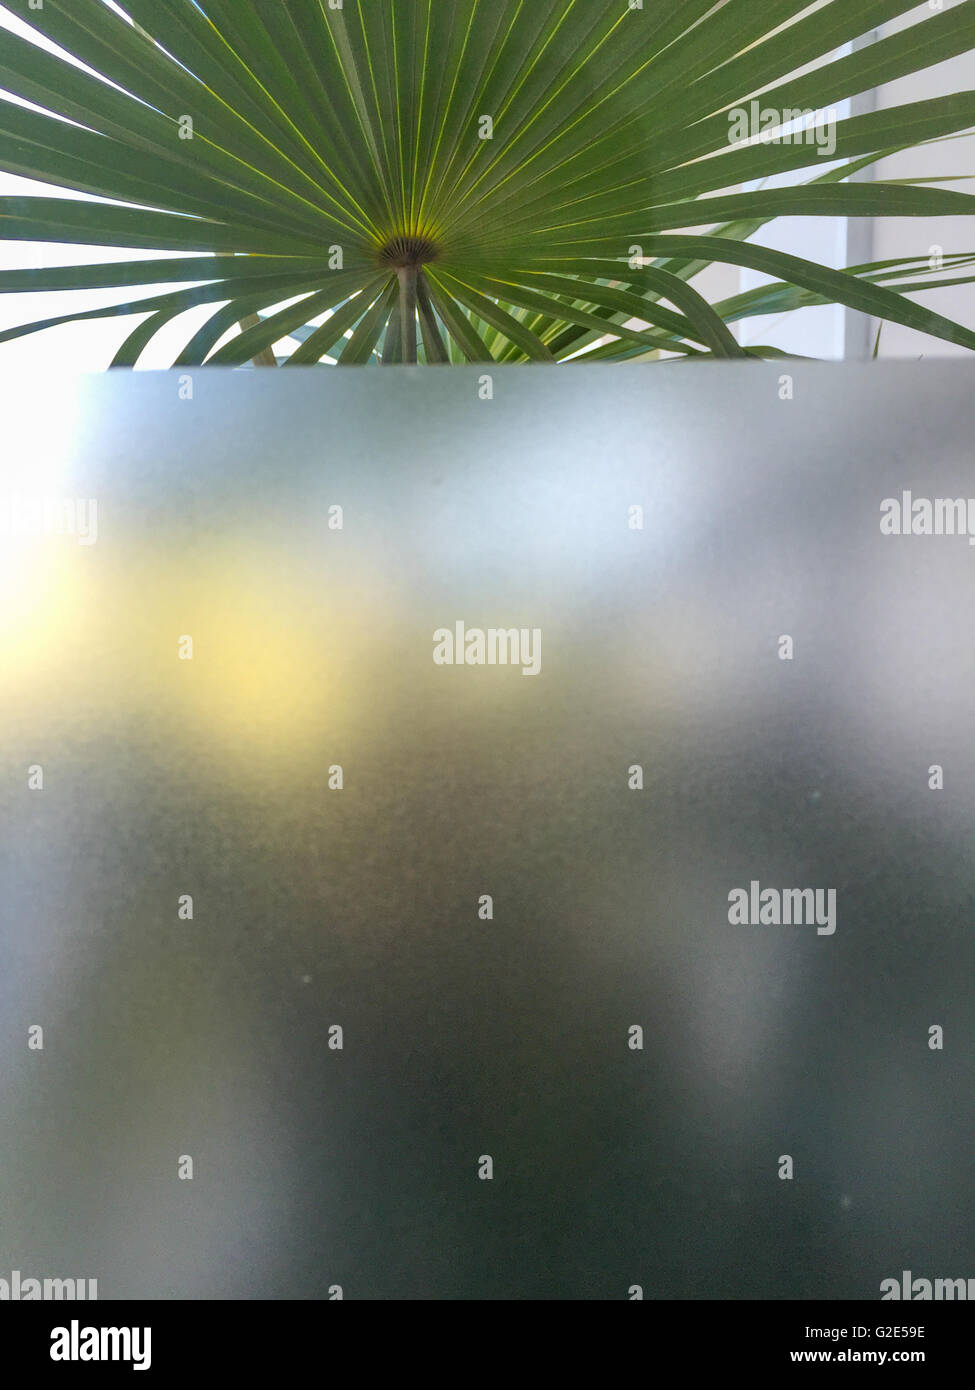 window with both an opaque and clear area and a plant beyond - Stock Image